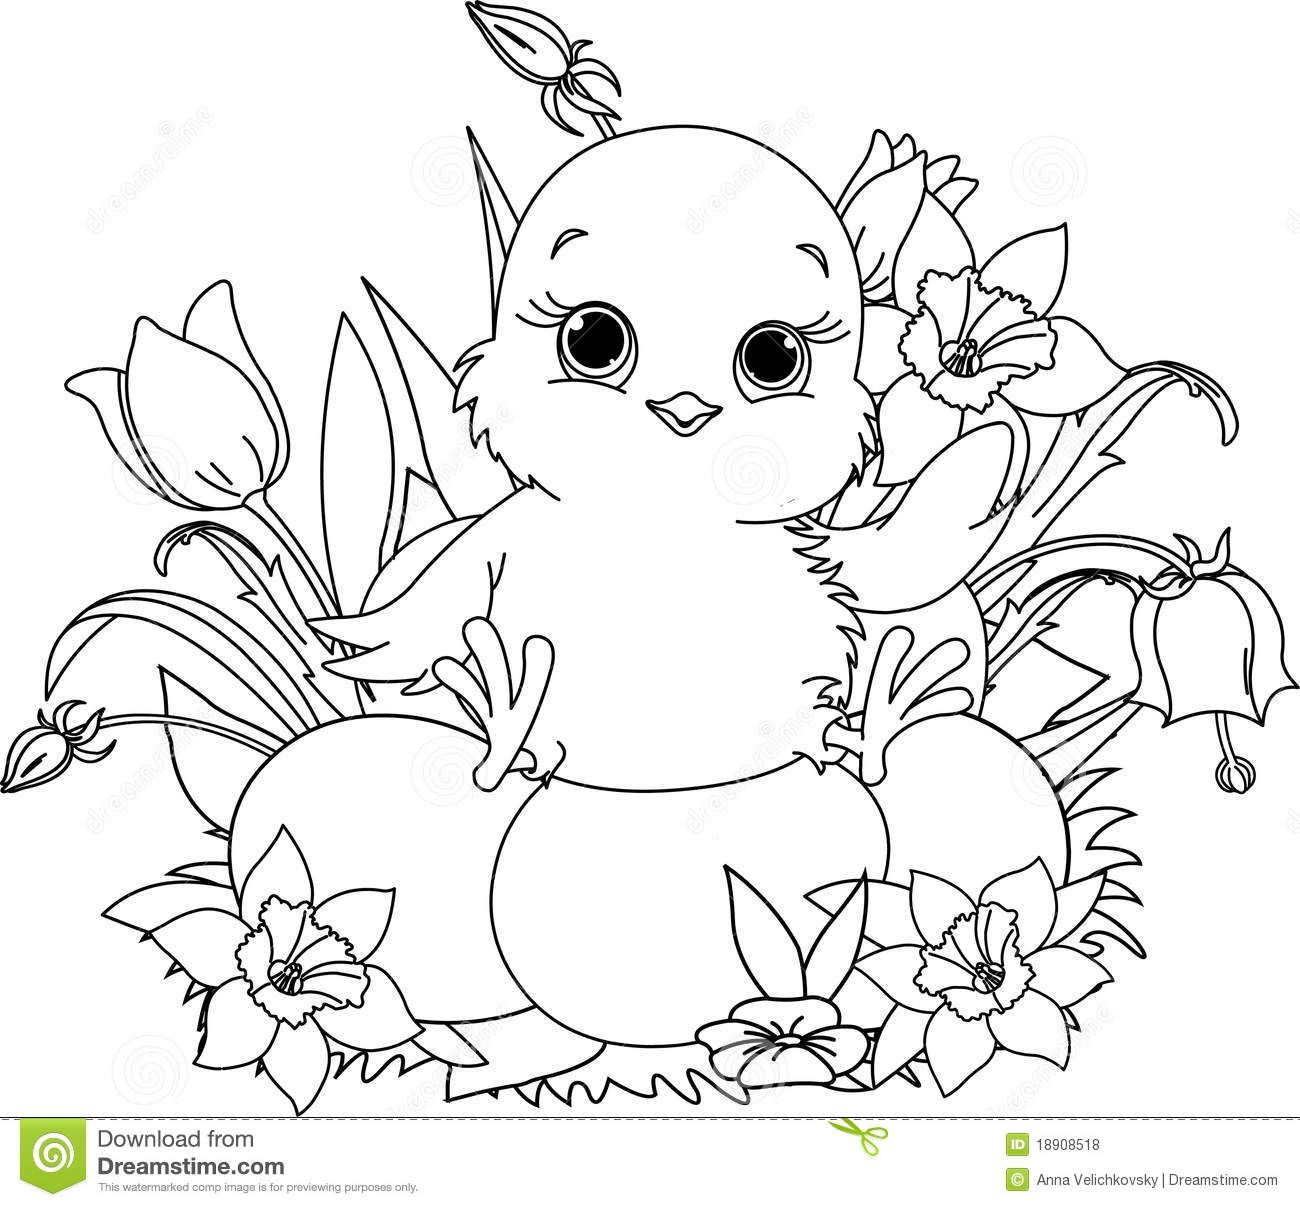 Free printable easter pages to color - Find This Pin And More On Easter Coloring Page Royalty Free